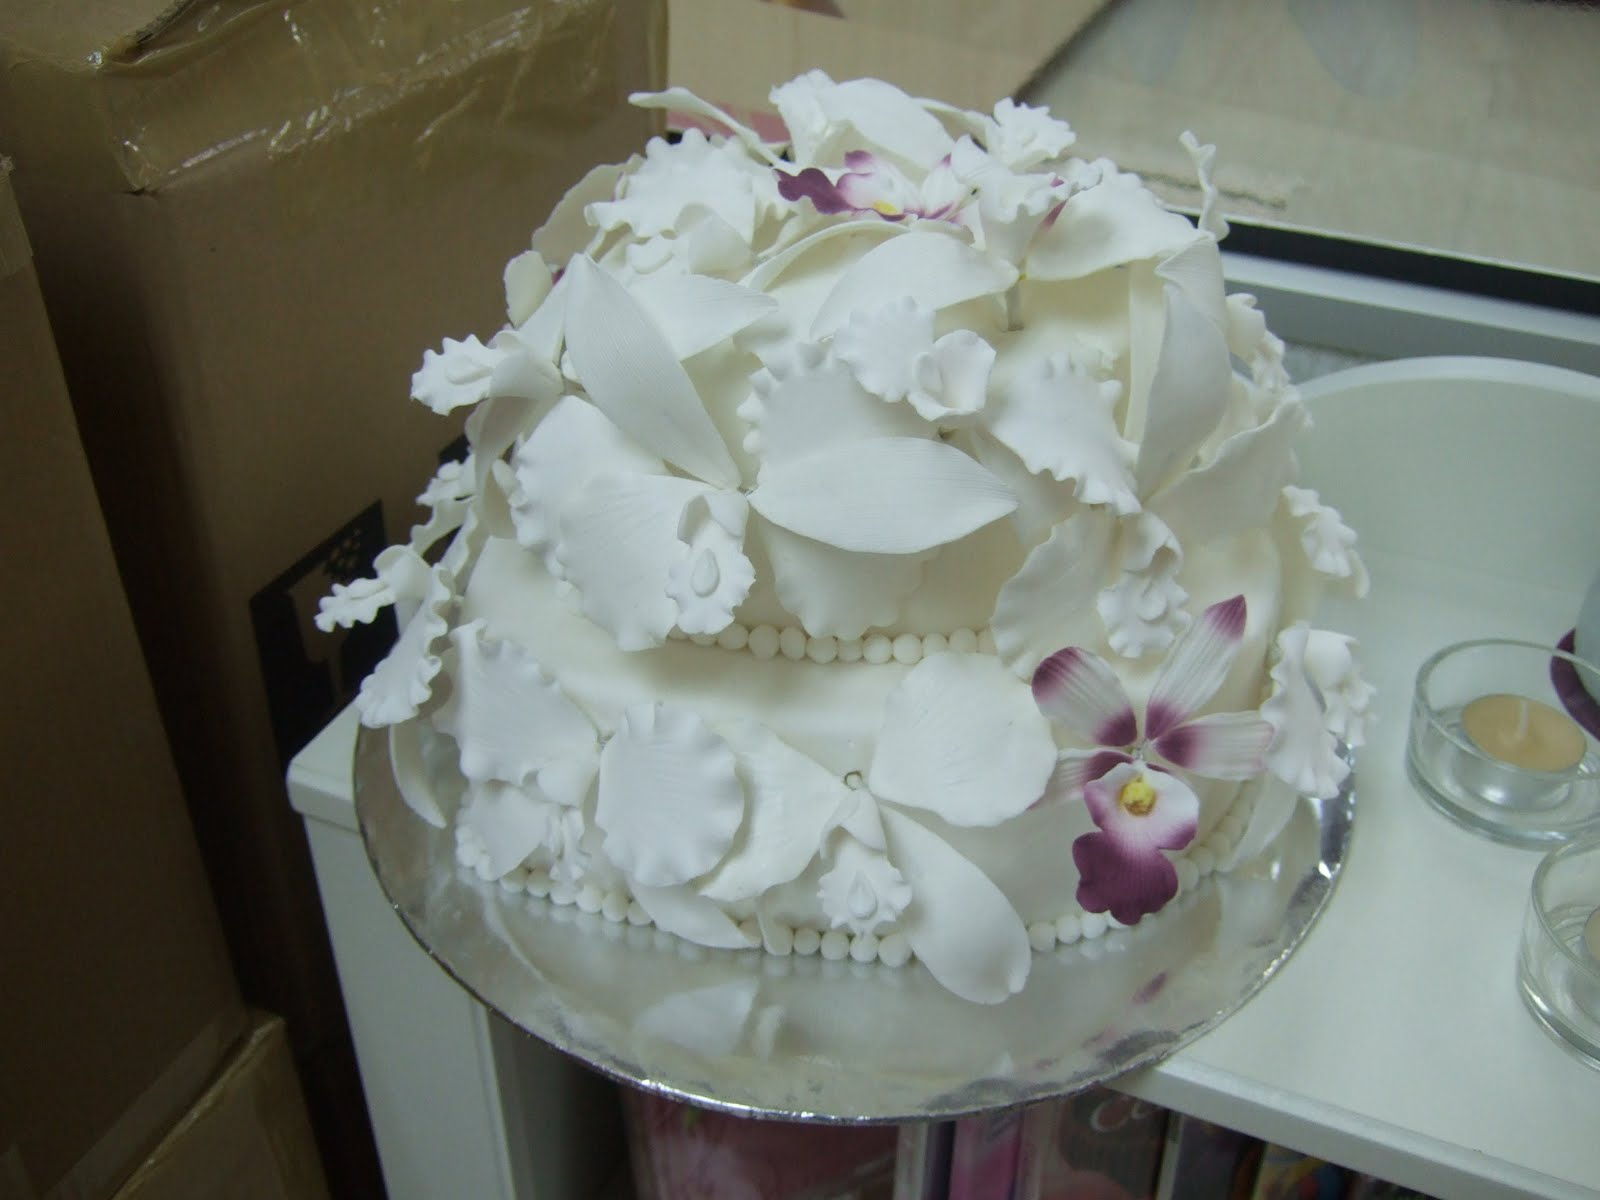 homemade fondant cakes 2 tiers Wedding cake sugarpaste